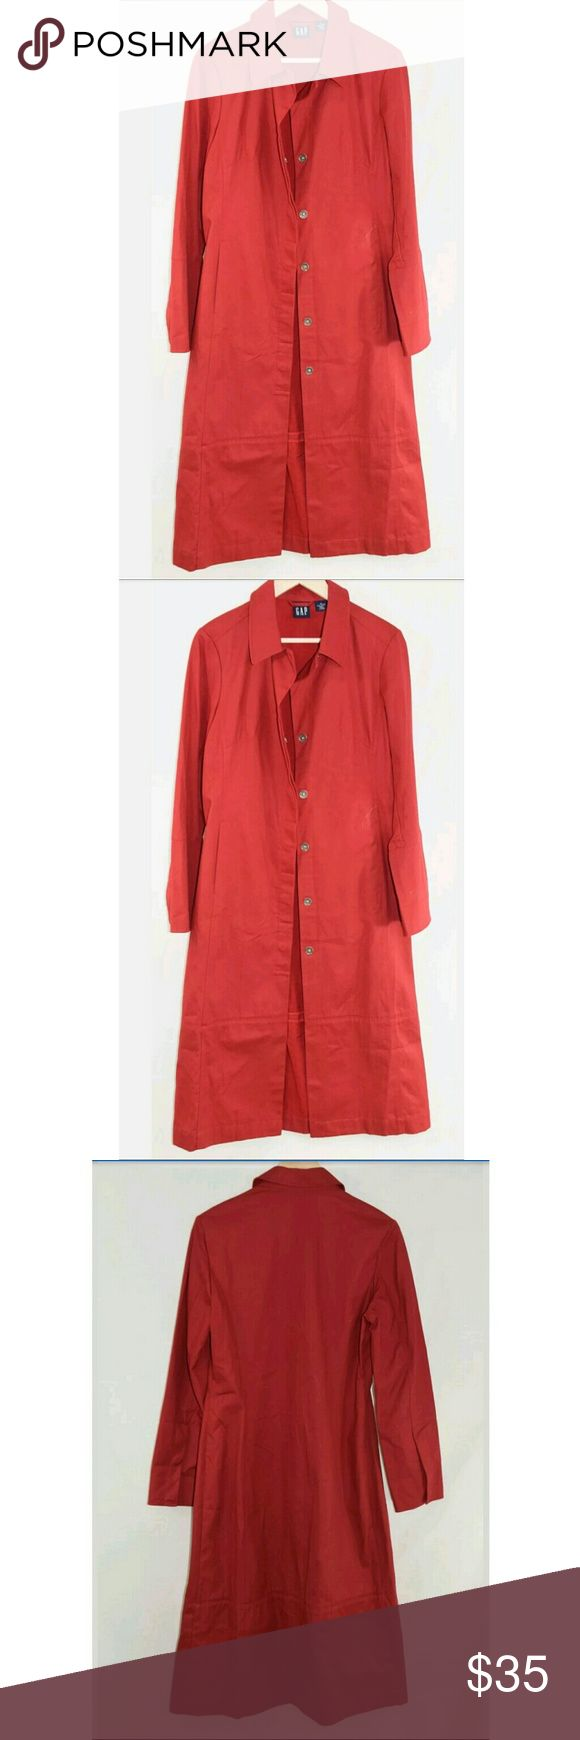 """Gap- Ladies Trench Coat Style Jacket Size M Gap- Ladies Trench Coat Style Jacket Red Women's -Size M -100% Cotton   Condition: Pre-Owned, Gently Used   Please Remember all Clothing Items may fit differently depending on Brand, Fit, Use or Prior customization. We strongly urge our customer's to check measurements first to guarantee proper fitting   Material: 100% Cotton   Approximate Measurements ( Measurements taken with item laying flat)  Chest: 20""""  Sleeve Length: 31 1/2""""  Length: 47 1/2""""…"""